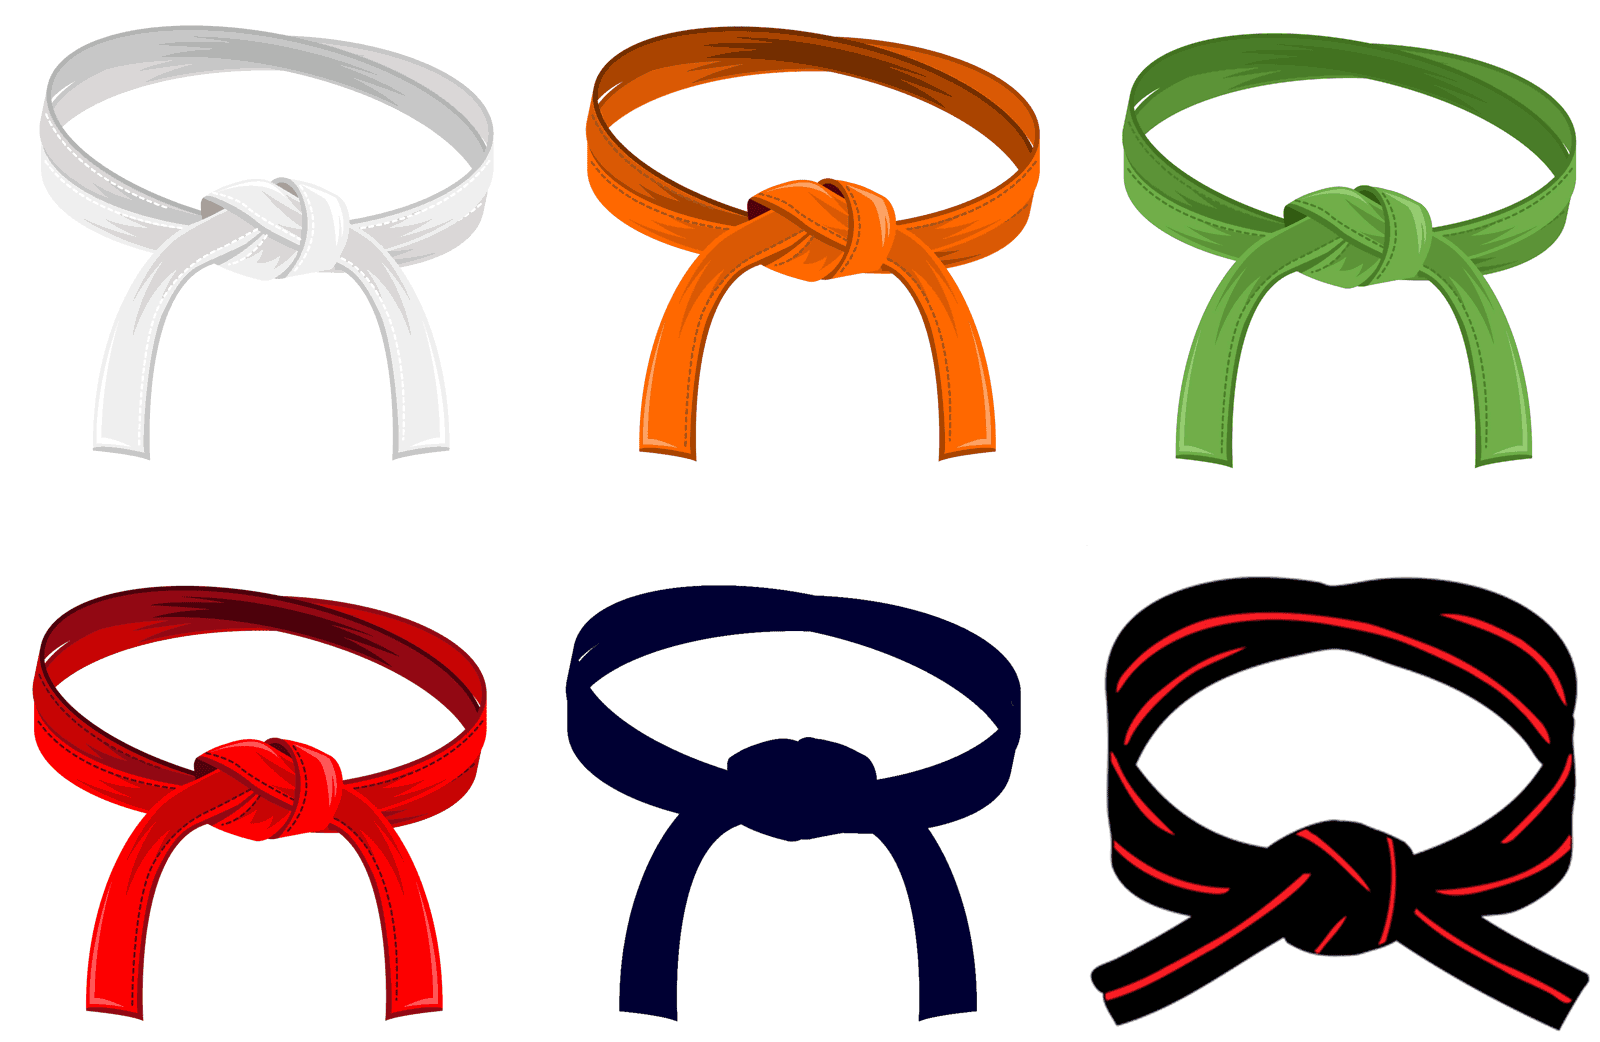 Rank Certification Requirements<br /><span style='font-family: arial, helvetica, sans-serif; font-size: 12pt; color: teal;'>Moo Duk Kwan® USA</span>